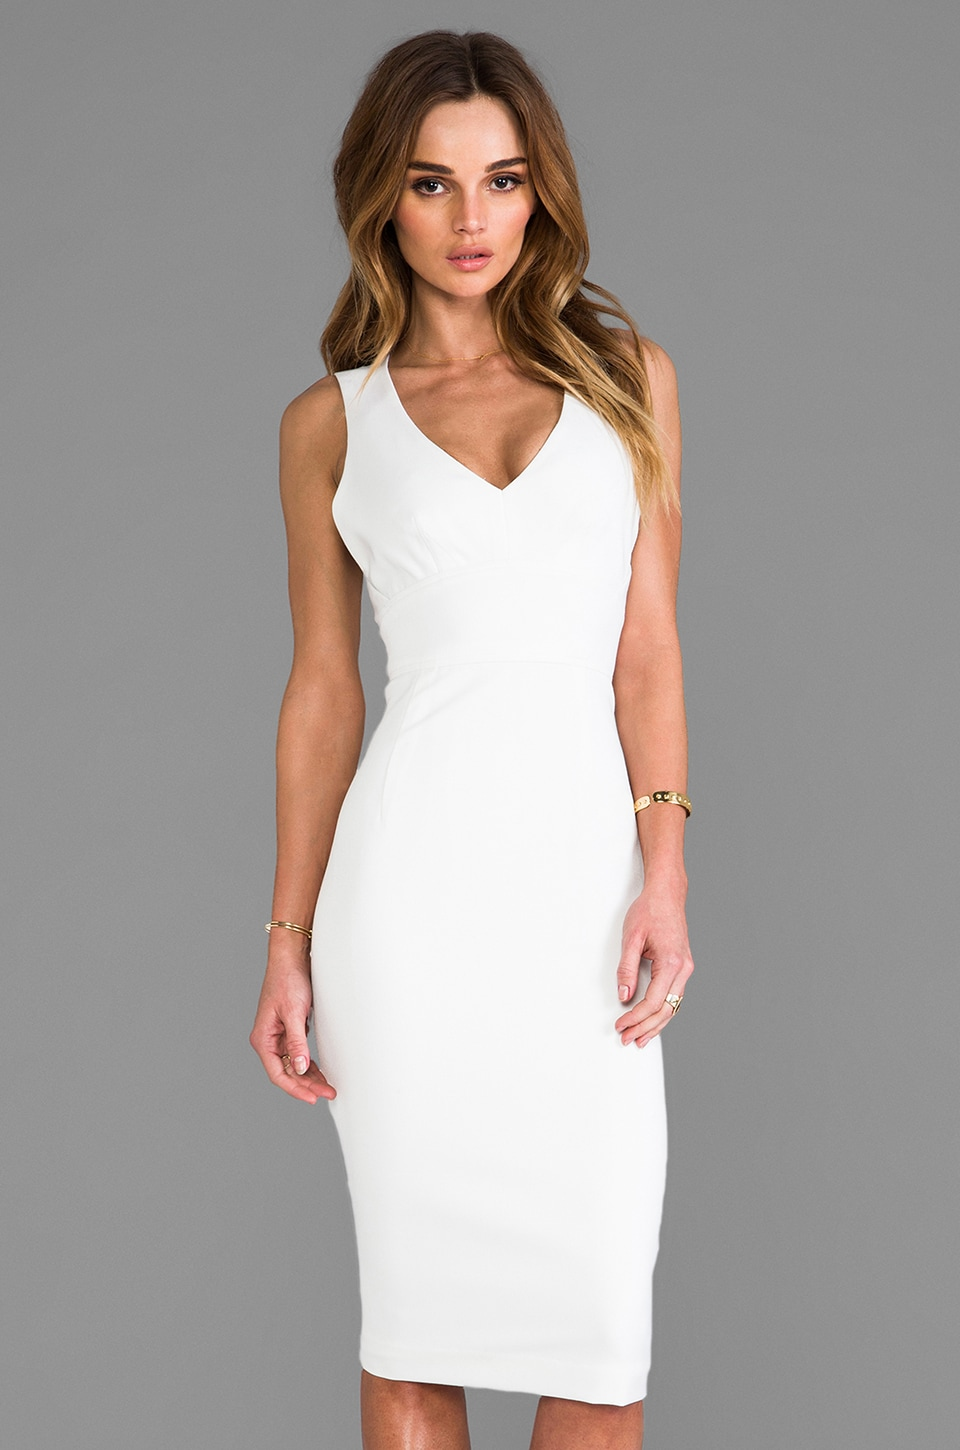 Black Halo Vera Sheath in Winter White